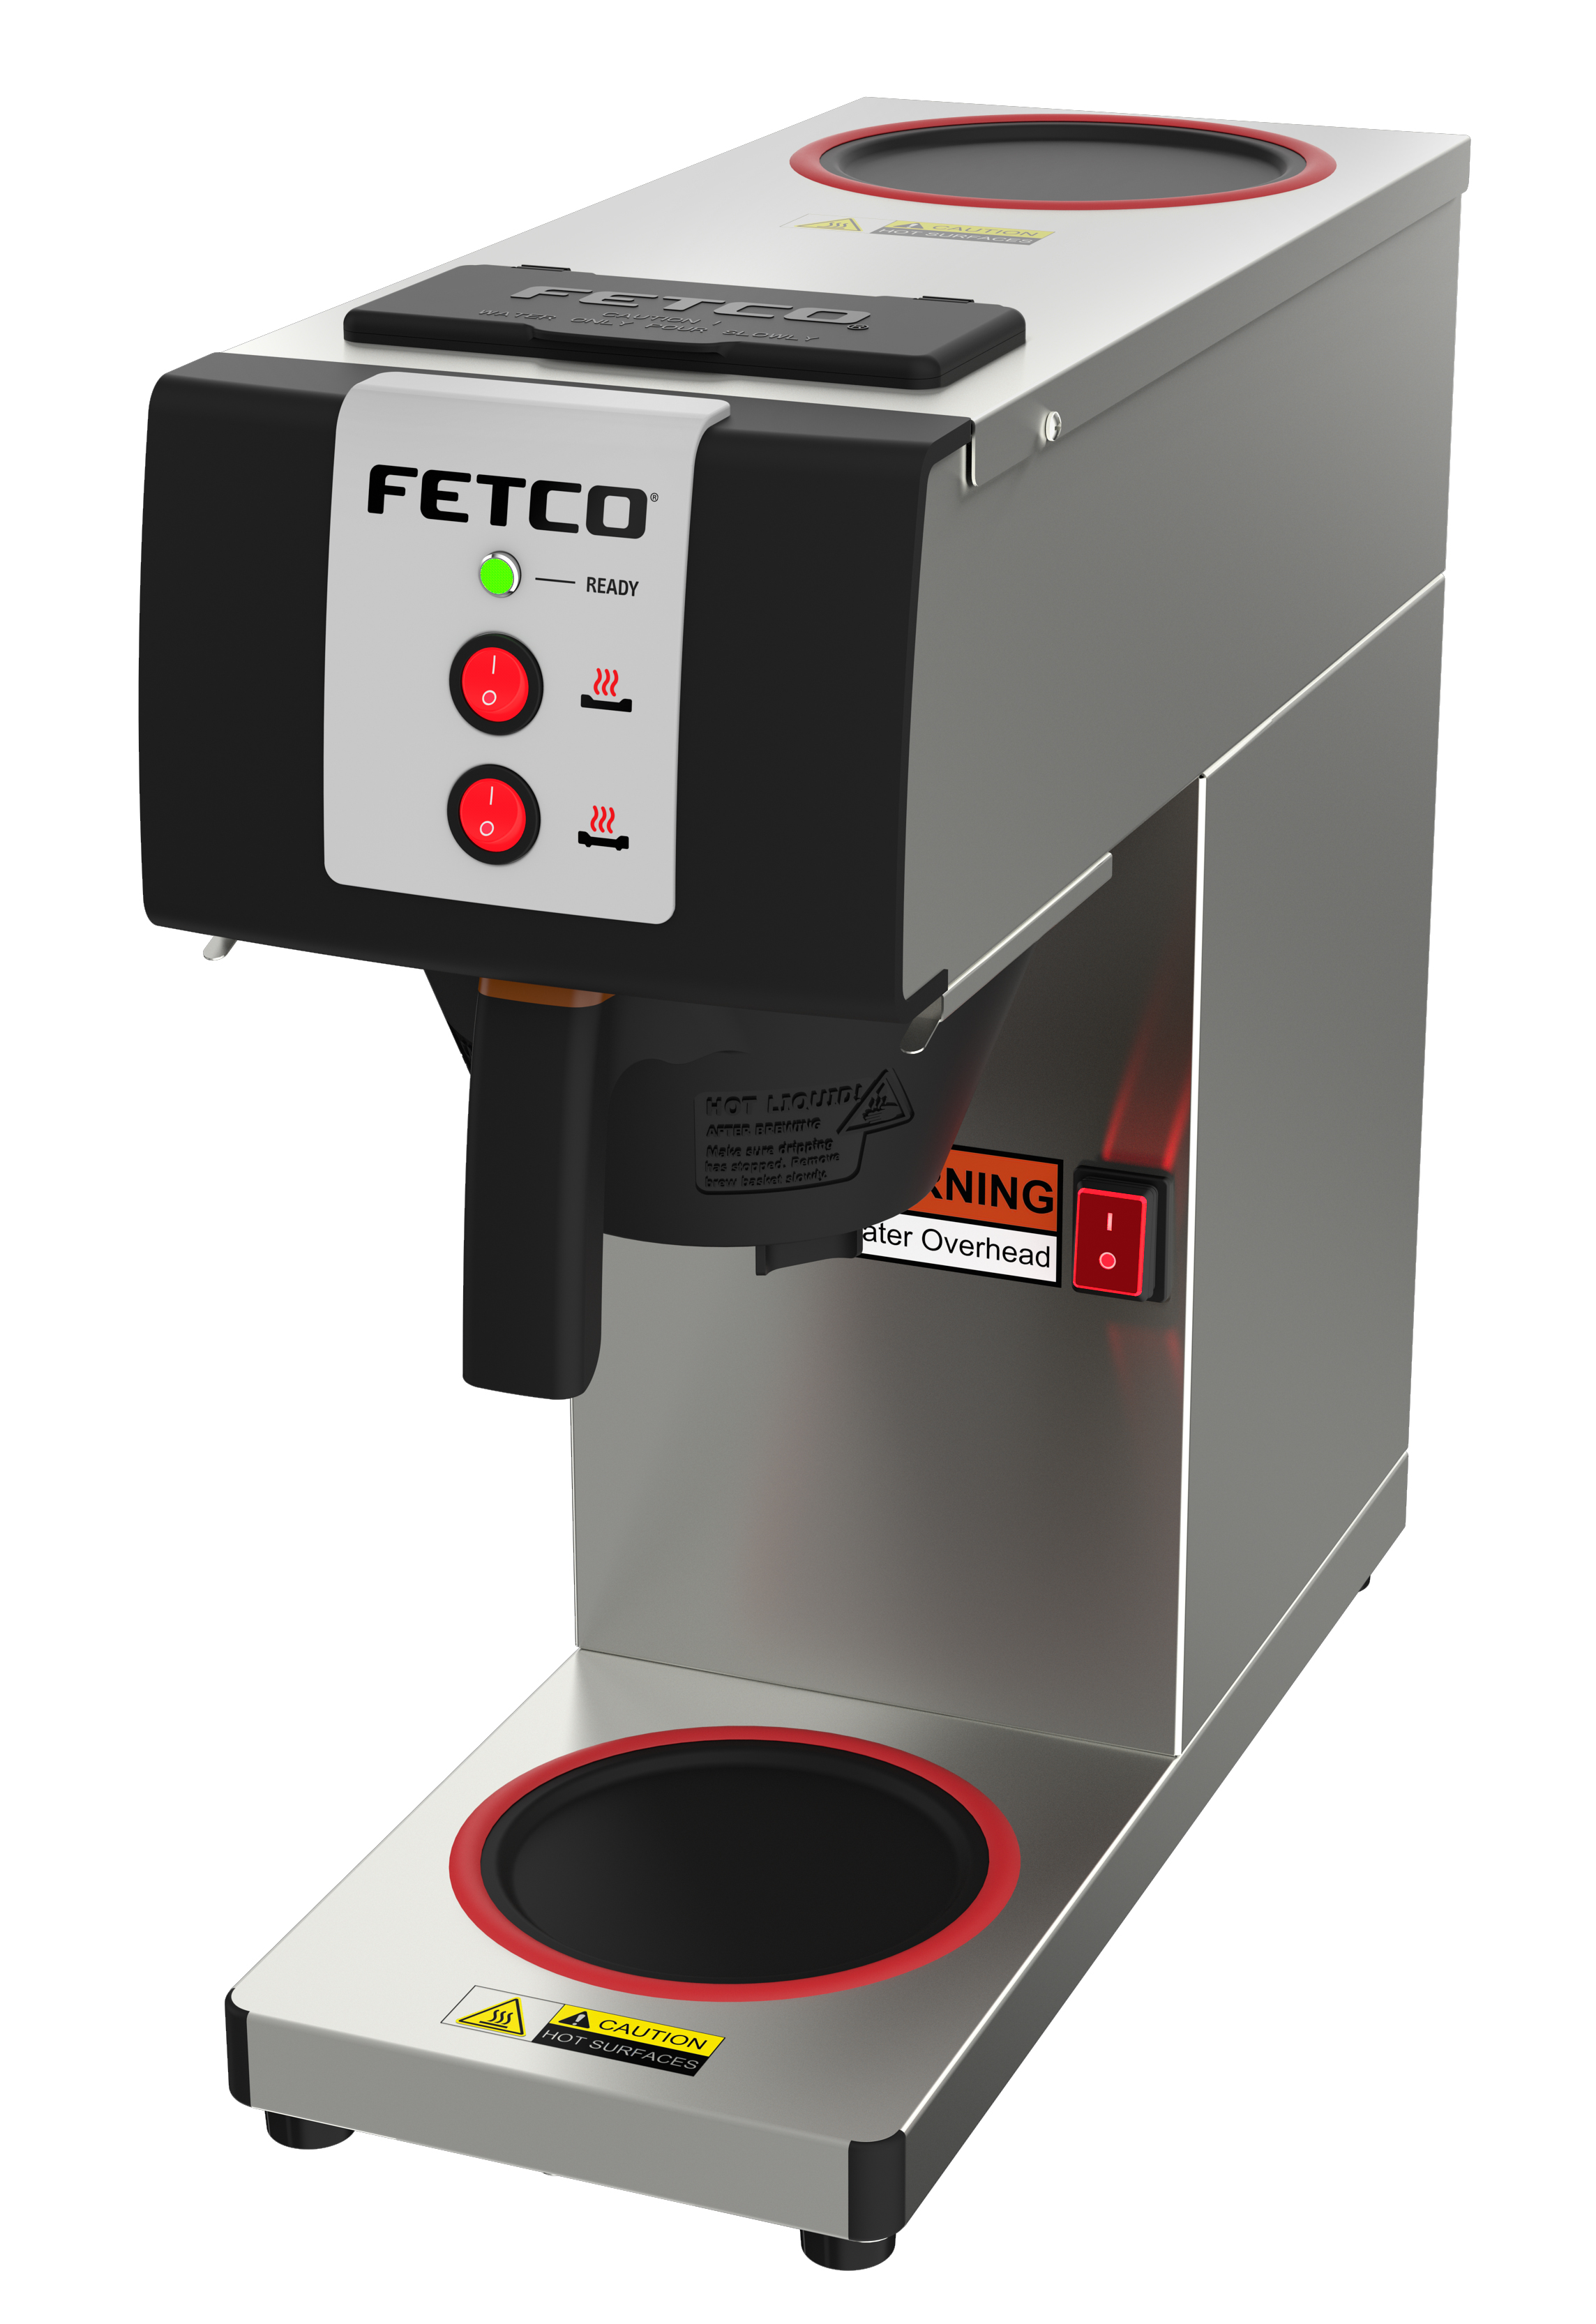 Fetco CBS-2121-PW 0.5G Pourover Brewer for Glass Servers